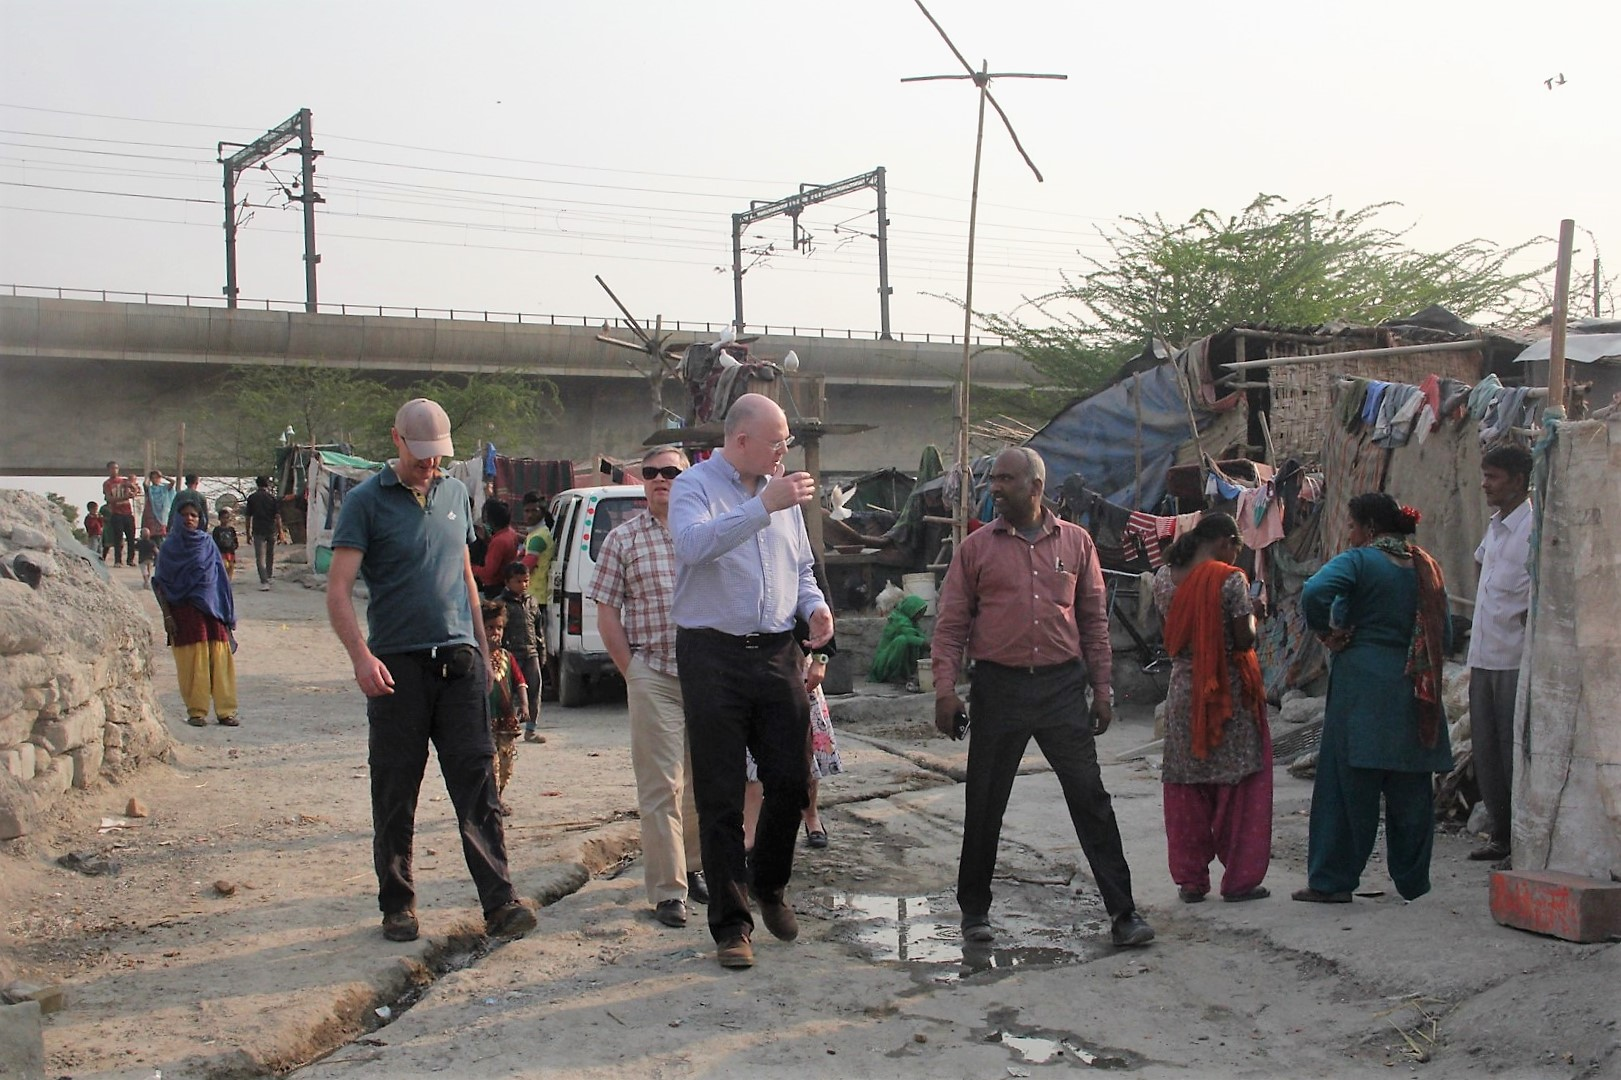 Asha team member, Subodh giving an overview about the new Seelampur slum area.